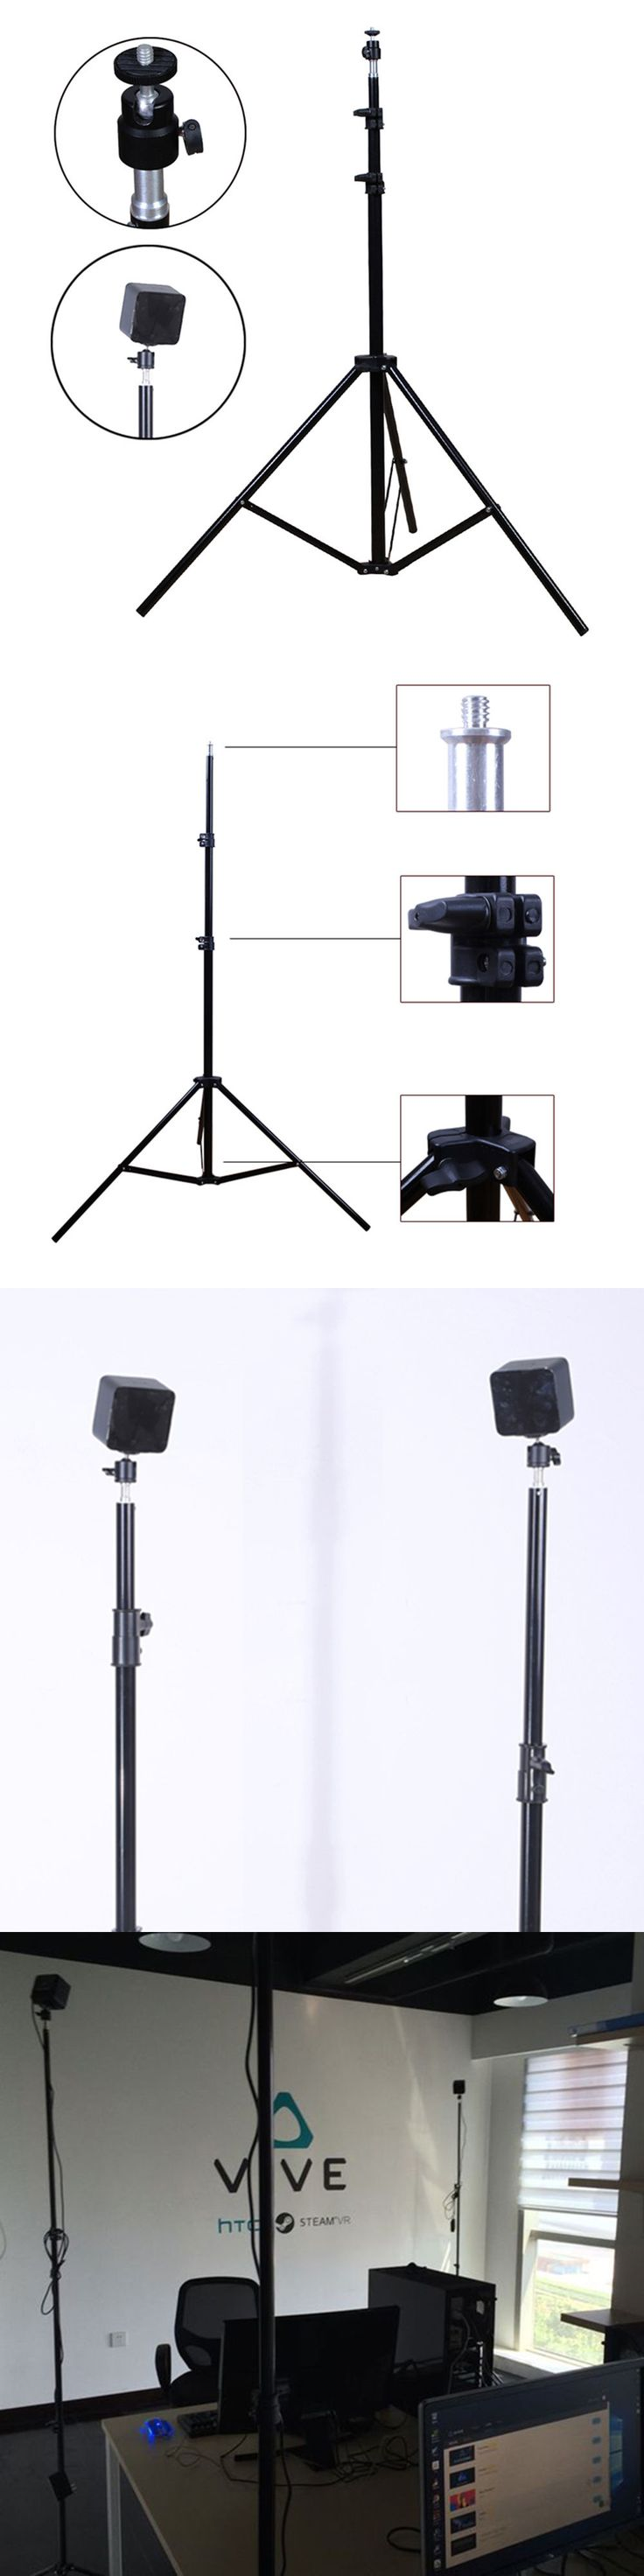 Electronics Parts: Locator Base Station Tripod Holder Mount With Ptz For Htc Vive Htc Vr Glasses BUY IT NOW ONLY: $53.0